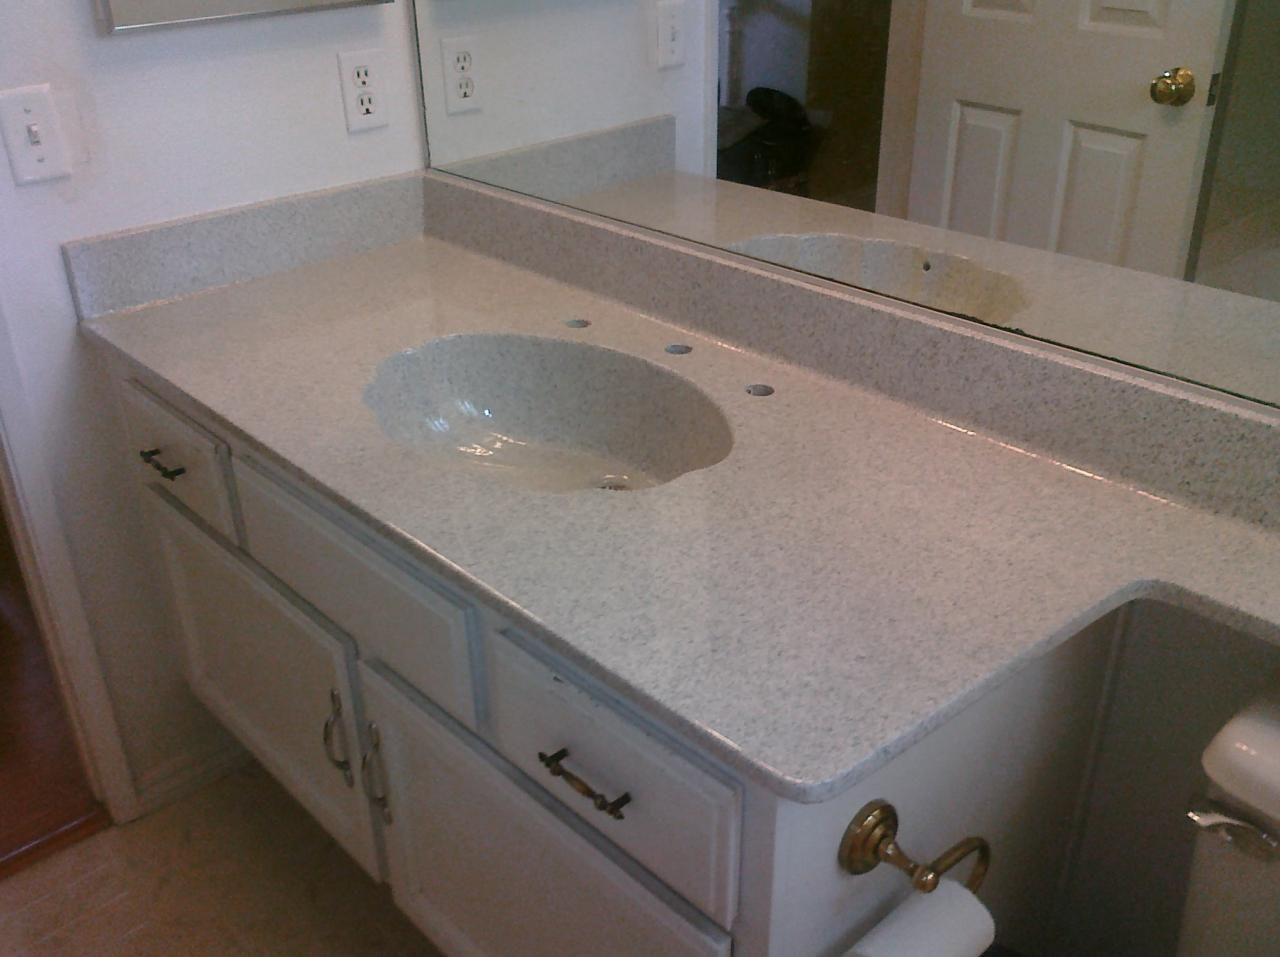 Painting Cultured Marble Sink Pkb Reglazing Cultured Marble Countertop Sink Combo Reglazed